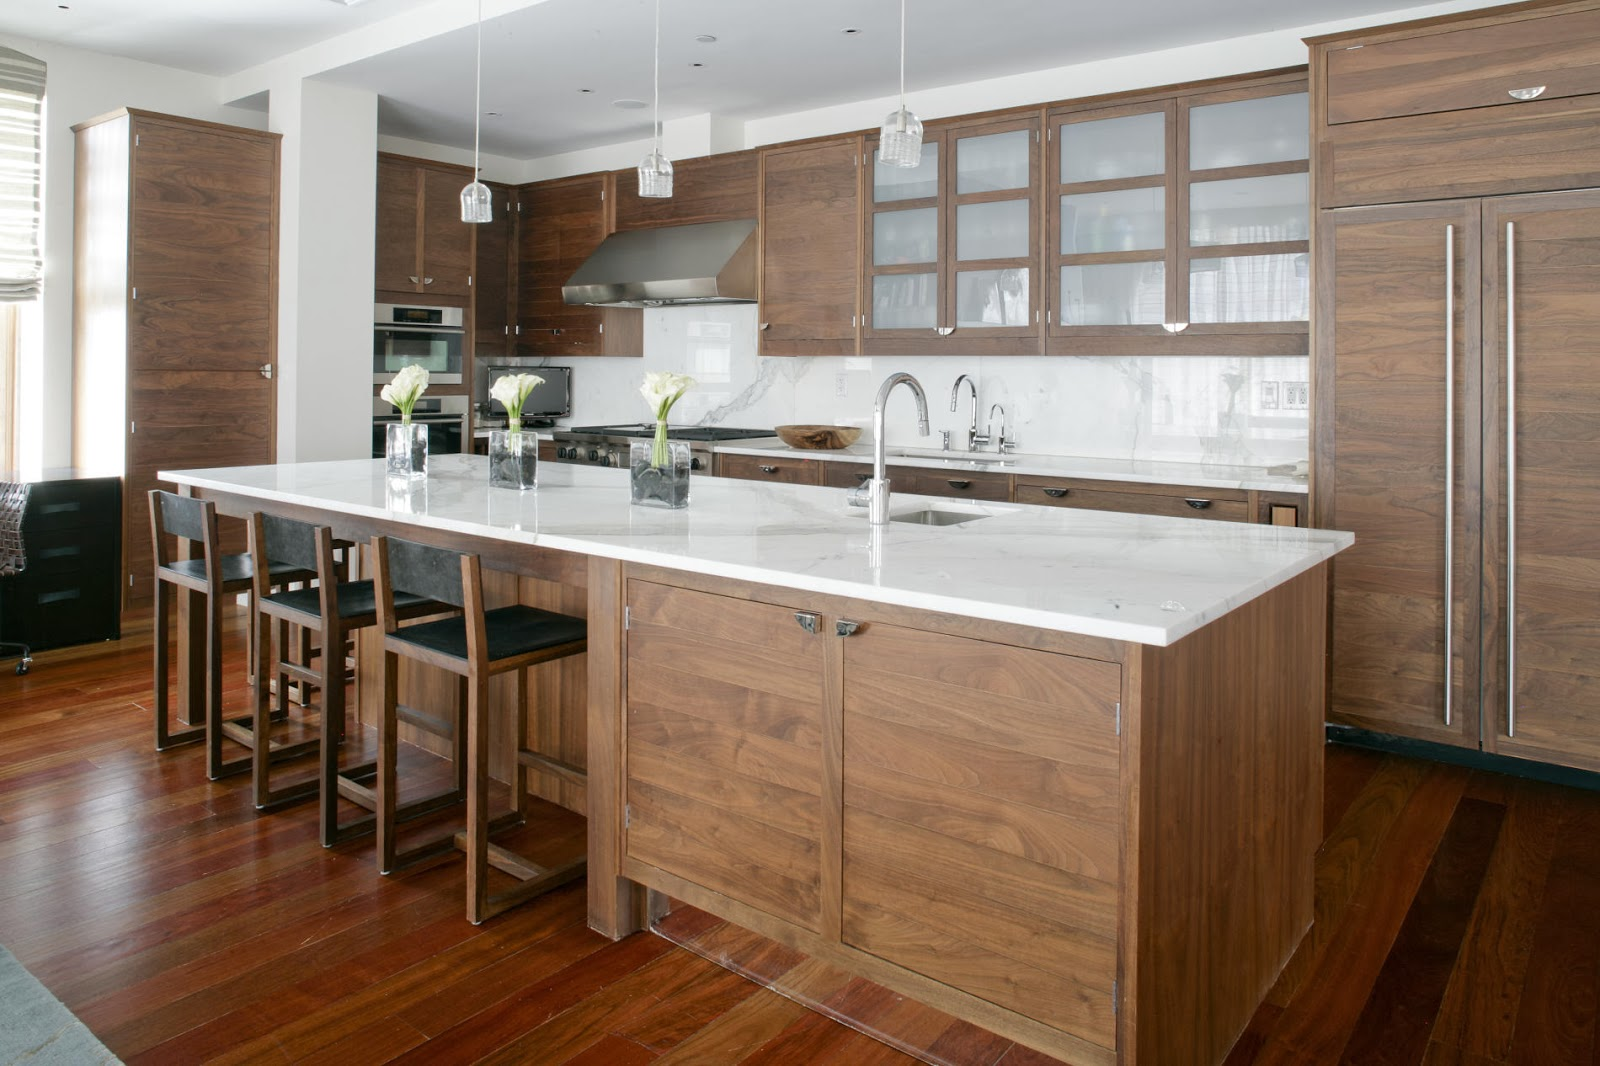 Small House Plans With Big Kitchens Interiornity |source of interior design ideas ...